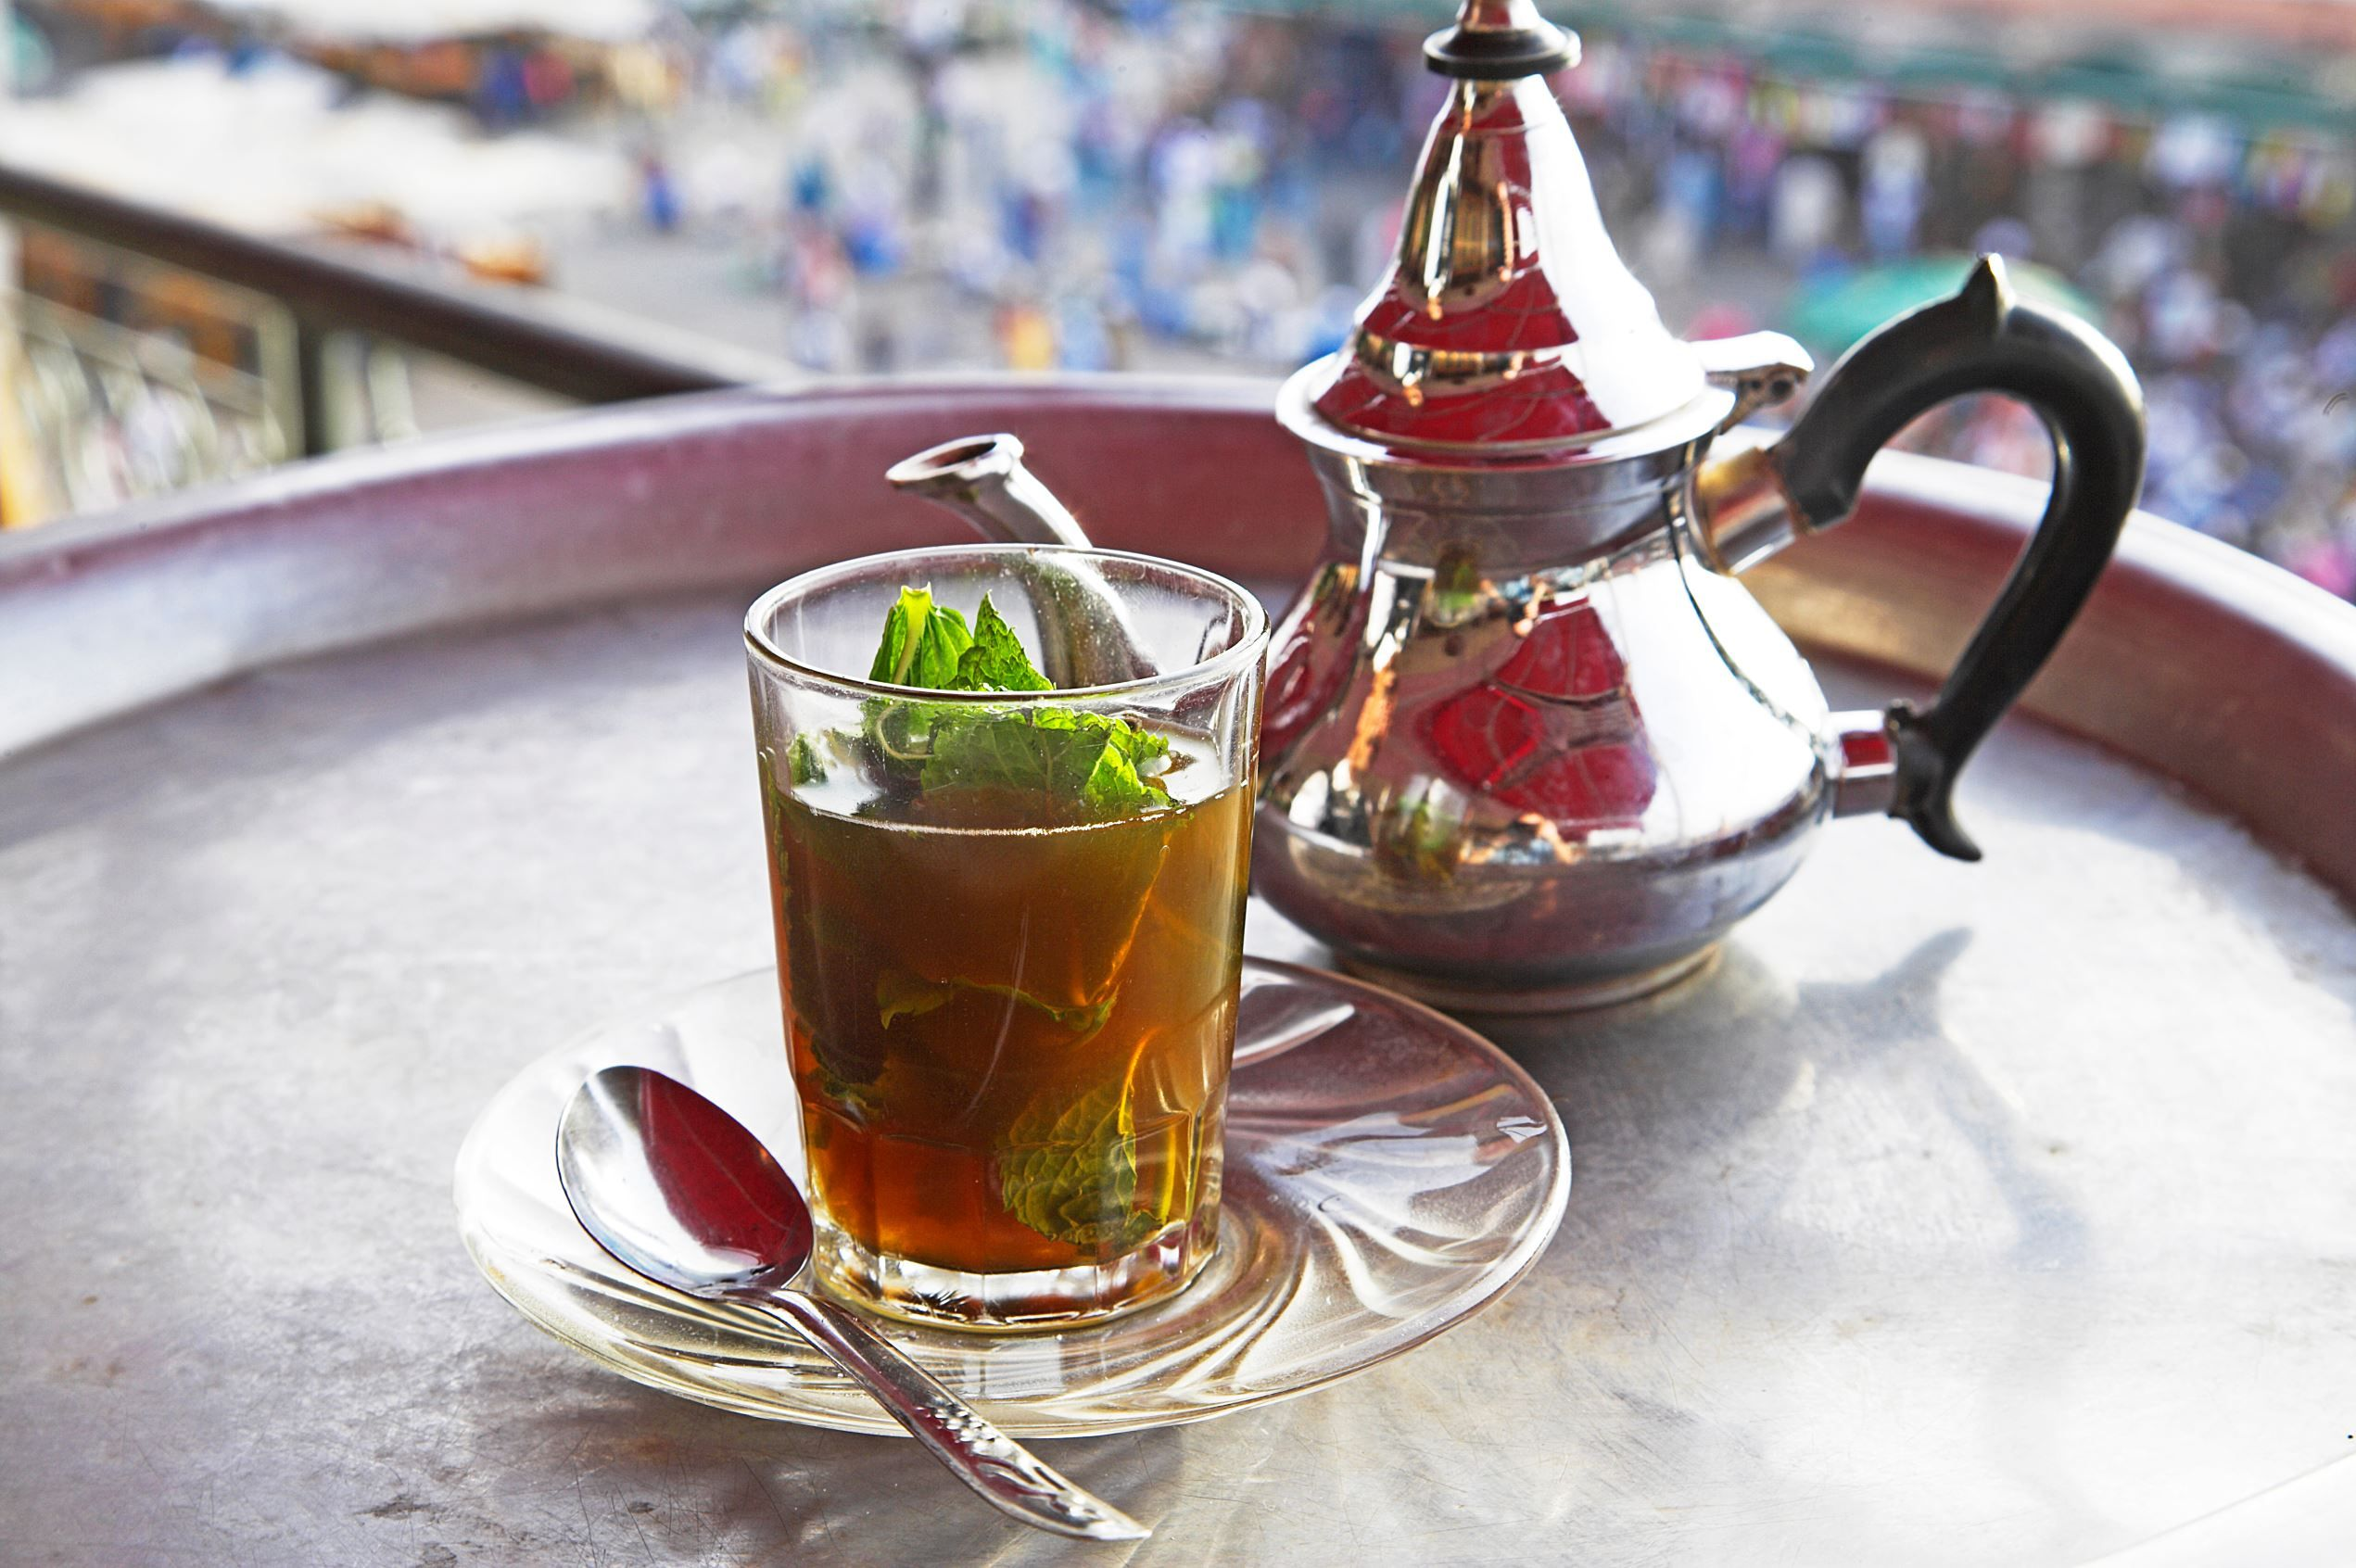 Maghreb mint tea Known to have introduced green tea to the